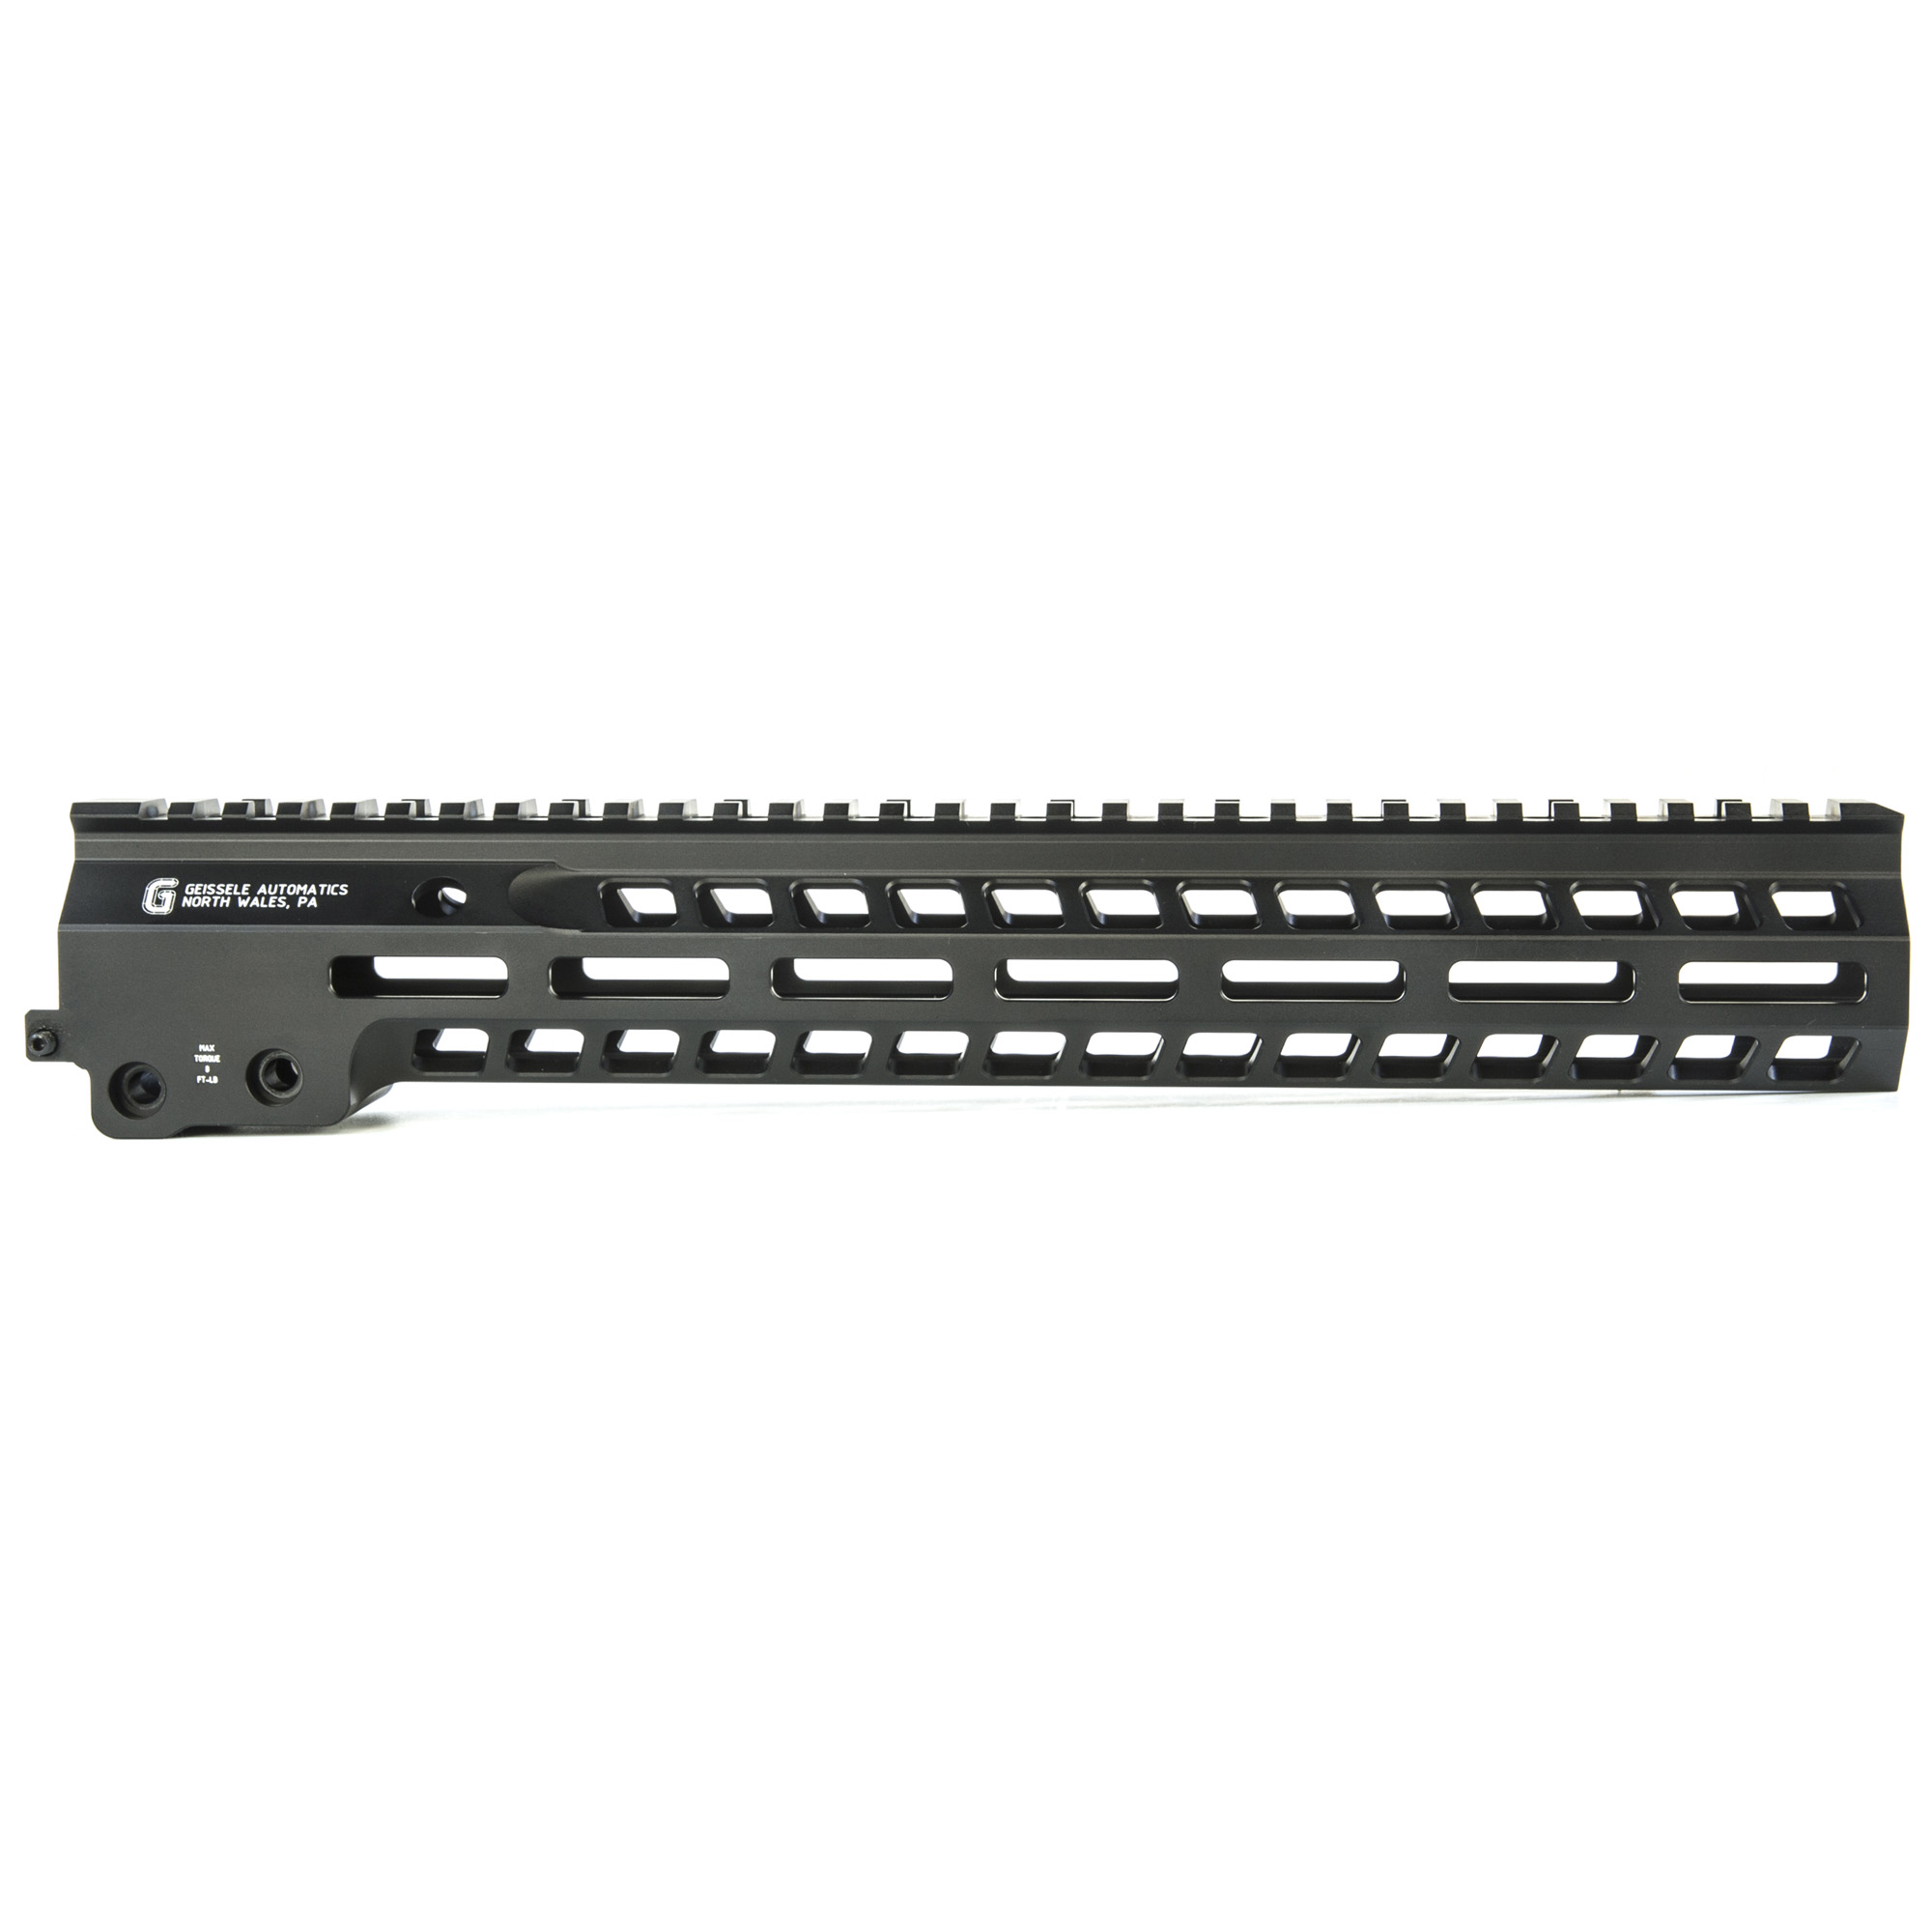 """Geissele's Super Modular 13"""" MK14 M-Lok Rail is the latest entry to the Geissele line up of Super Modular Rails. The new handguard design offers a smaller diameter and overall height to create a slimmer package. Included with the MK14 Super Modular Rail is an updated version of the proven Geissele Barrel Nut design"""" not only providing ease of installation but superior rigidity. The long surface contact of the 2.25"""" barrel nut interfaces with the receiver creating a platform that can be trusted to be straight and true the entire length of the free float rail. The MK14 is 3d precision machined using 6061-T6 Aluminum due to its strong"""" rigid and lightweight properties. Utilizing Magpul's M-LOK technology in the 3"""" 6"""" and 9 o'clock positions allow the end user full customization and modularity of their rifle to securely mount lights"""" bipods and other firearm accessories. The Geissele MK14 Super Modular rail is Type 3 Hardcoat Anodized. This product is bundled with a low-profile Geissele Super Gas Block."""